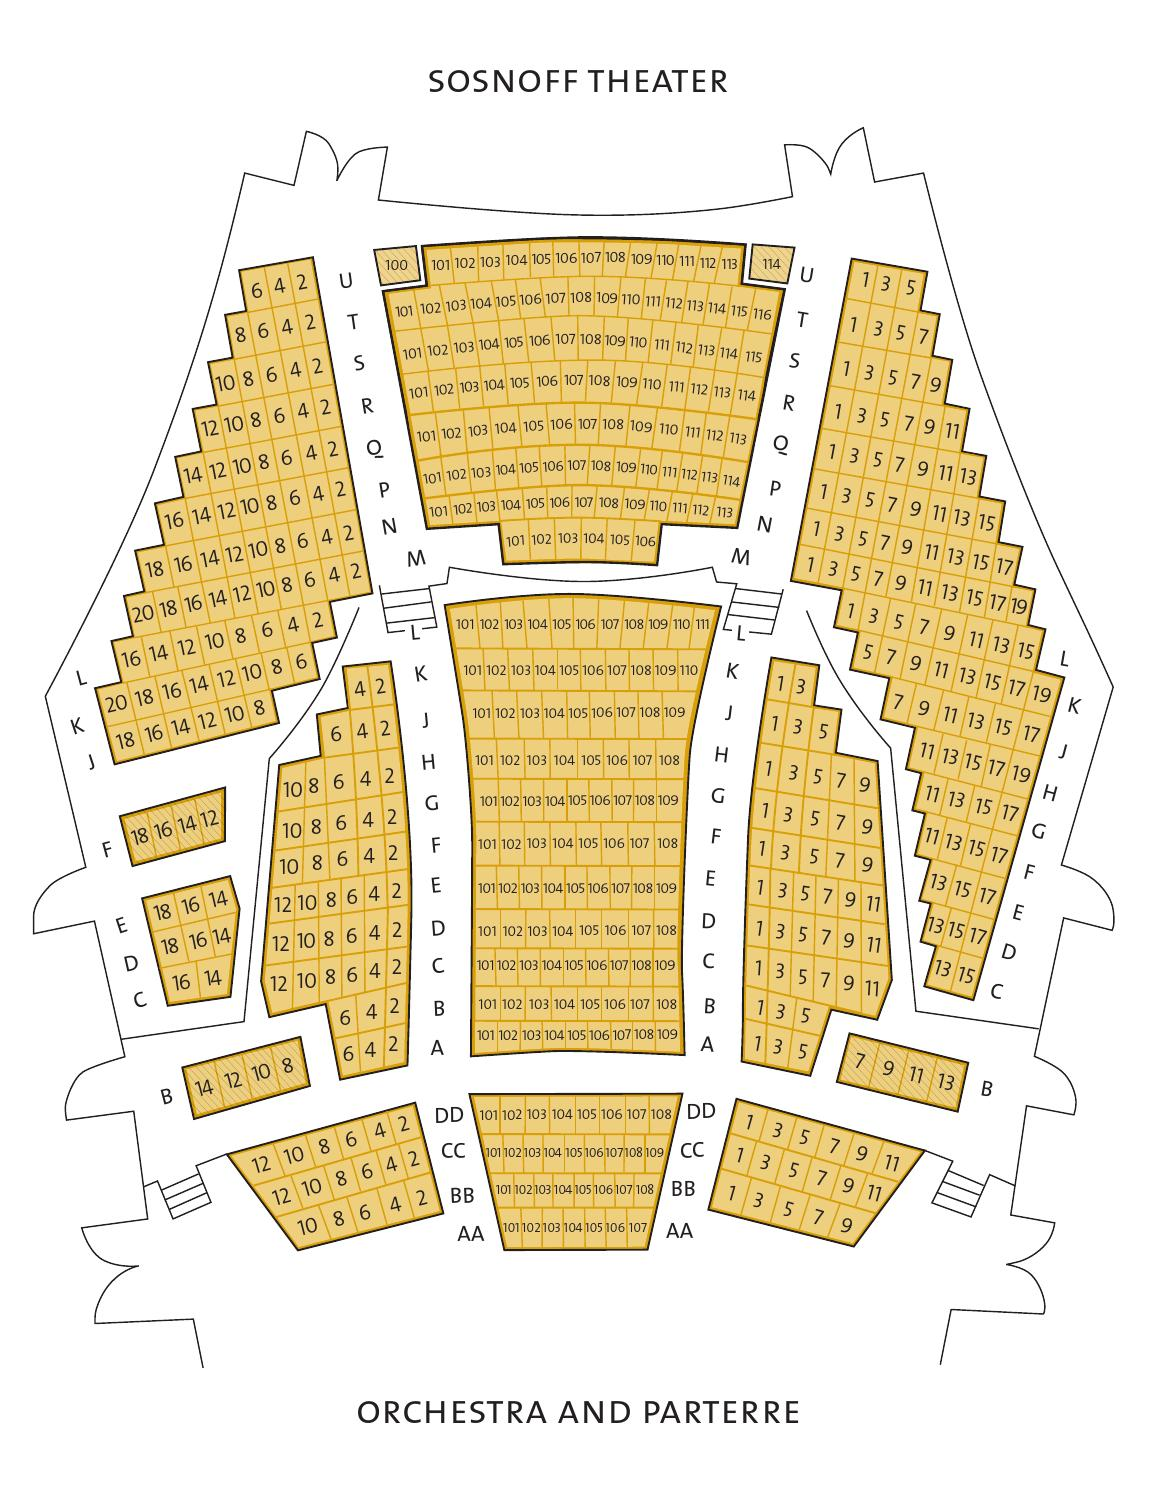 Fisher Theater Seating Chart : fisher, theater, seating, chart, Fisher, Center, Venues,, Seating, Chart, Issuu